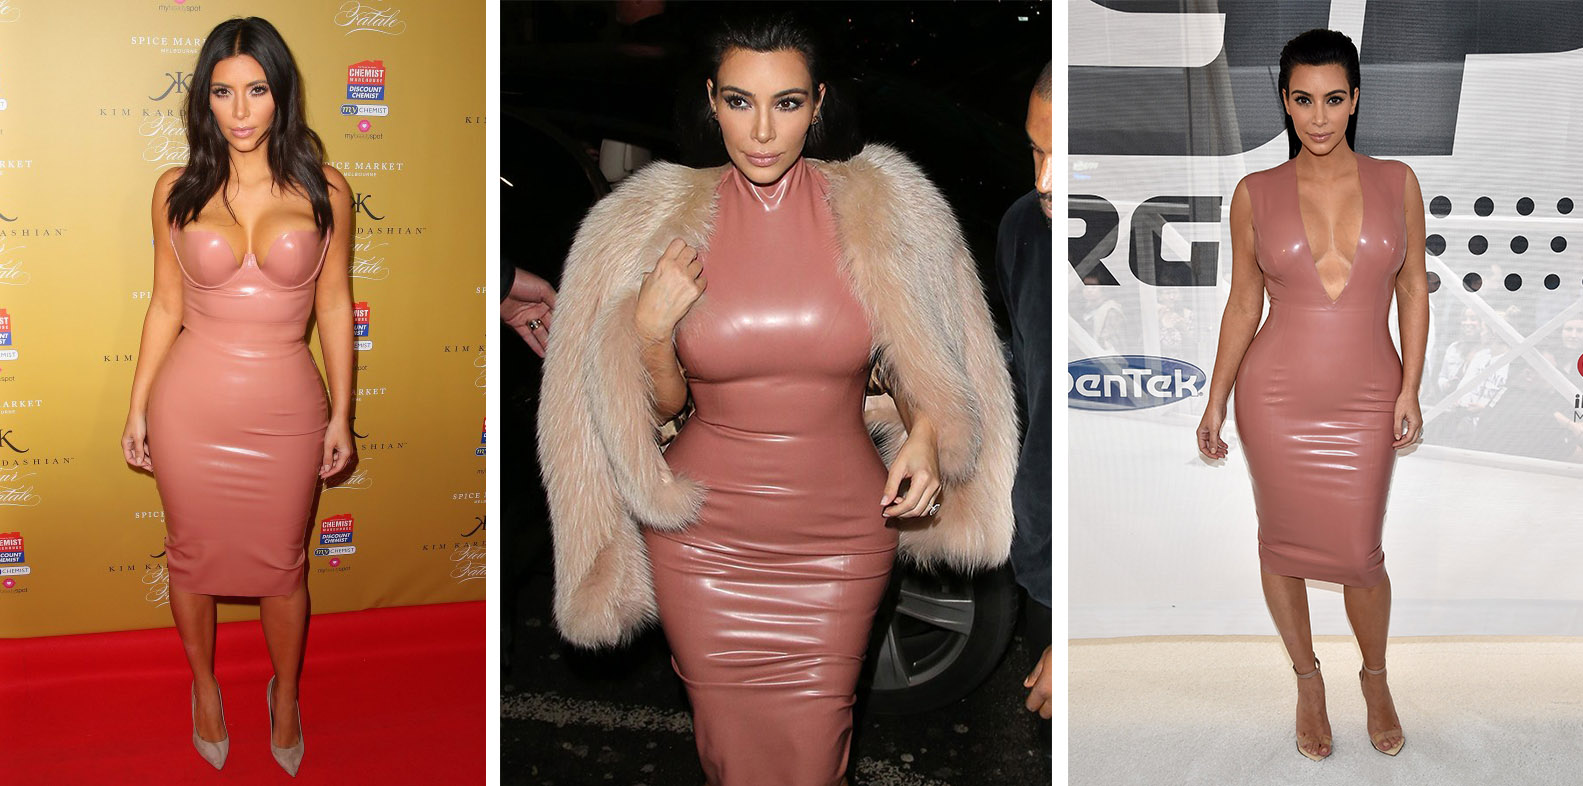 Kim Kardashian West wearing three variations of the latex dress designed by Atsuko Kudo.